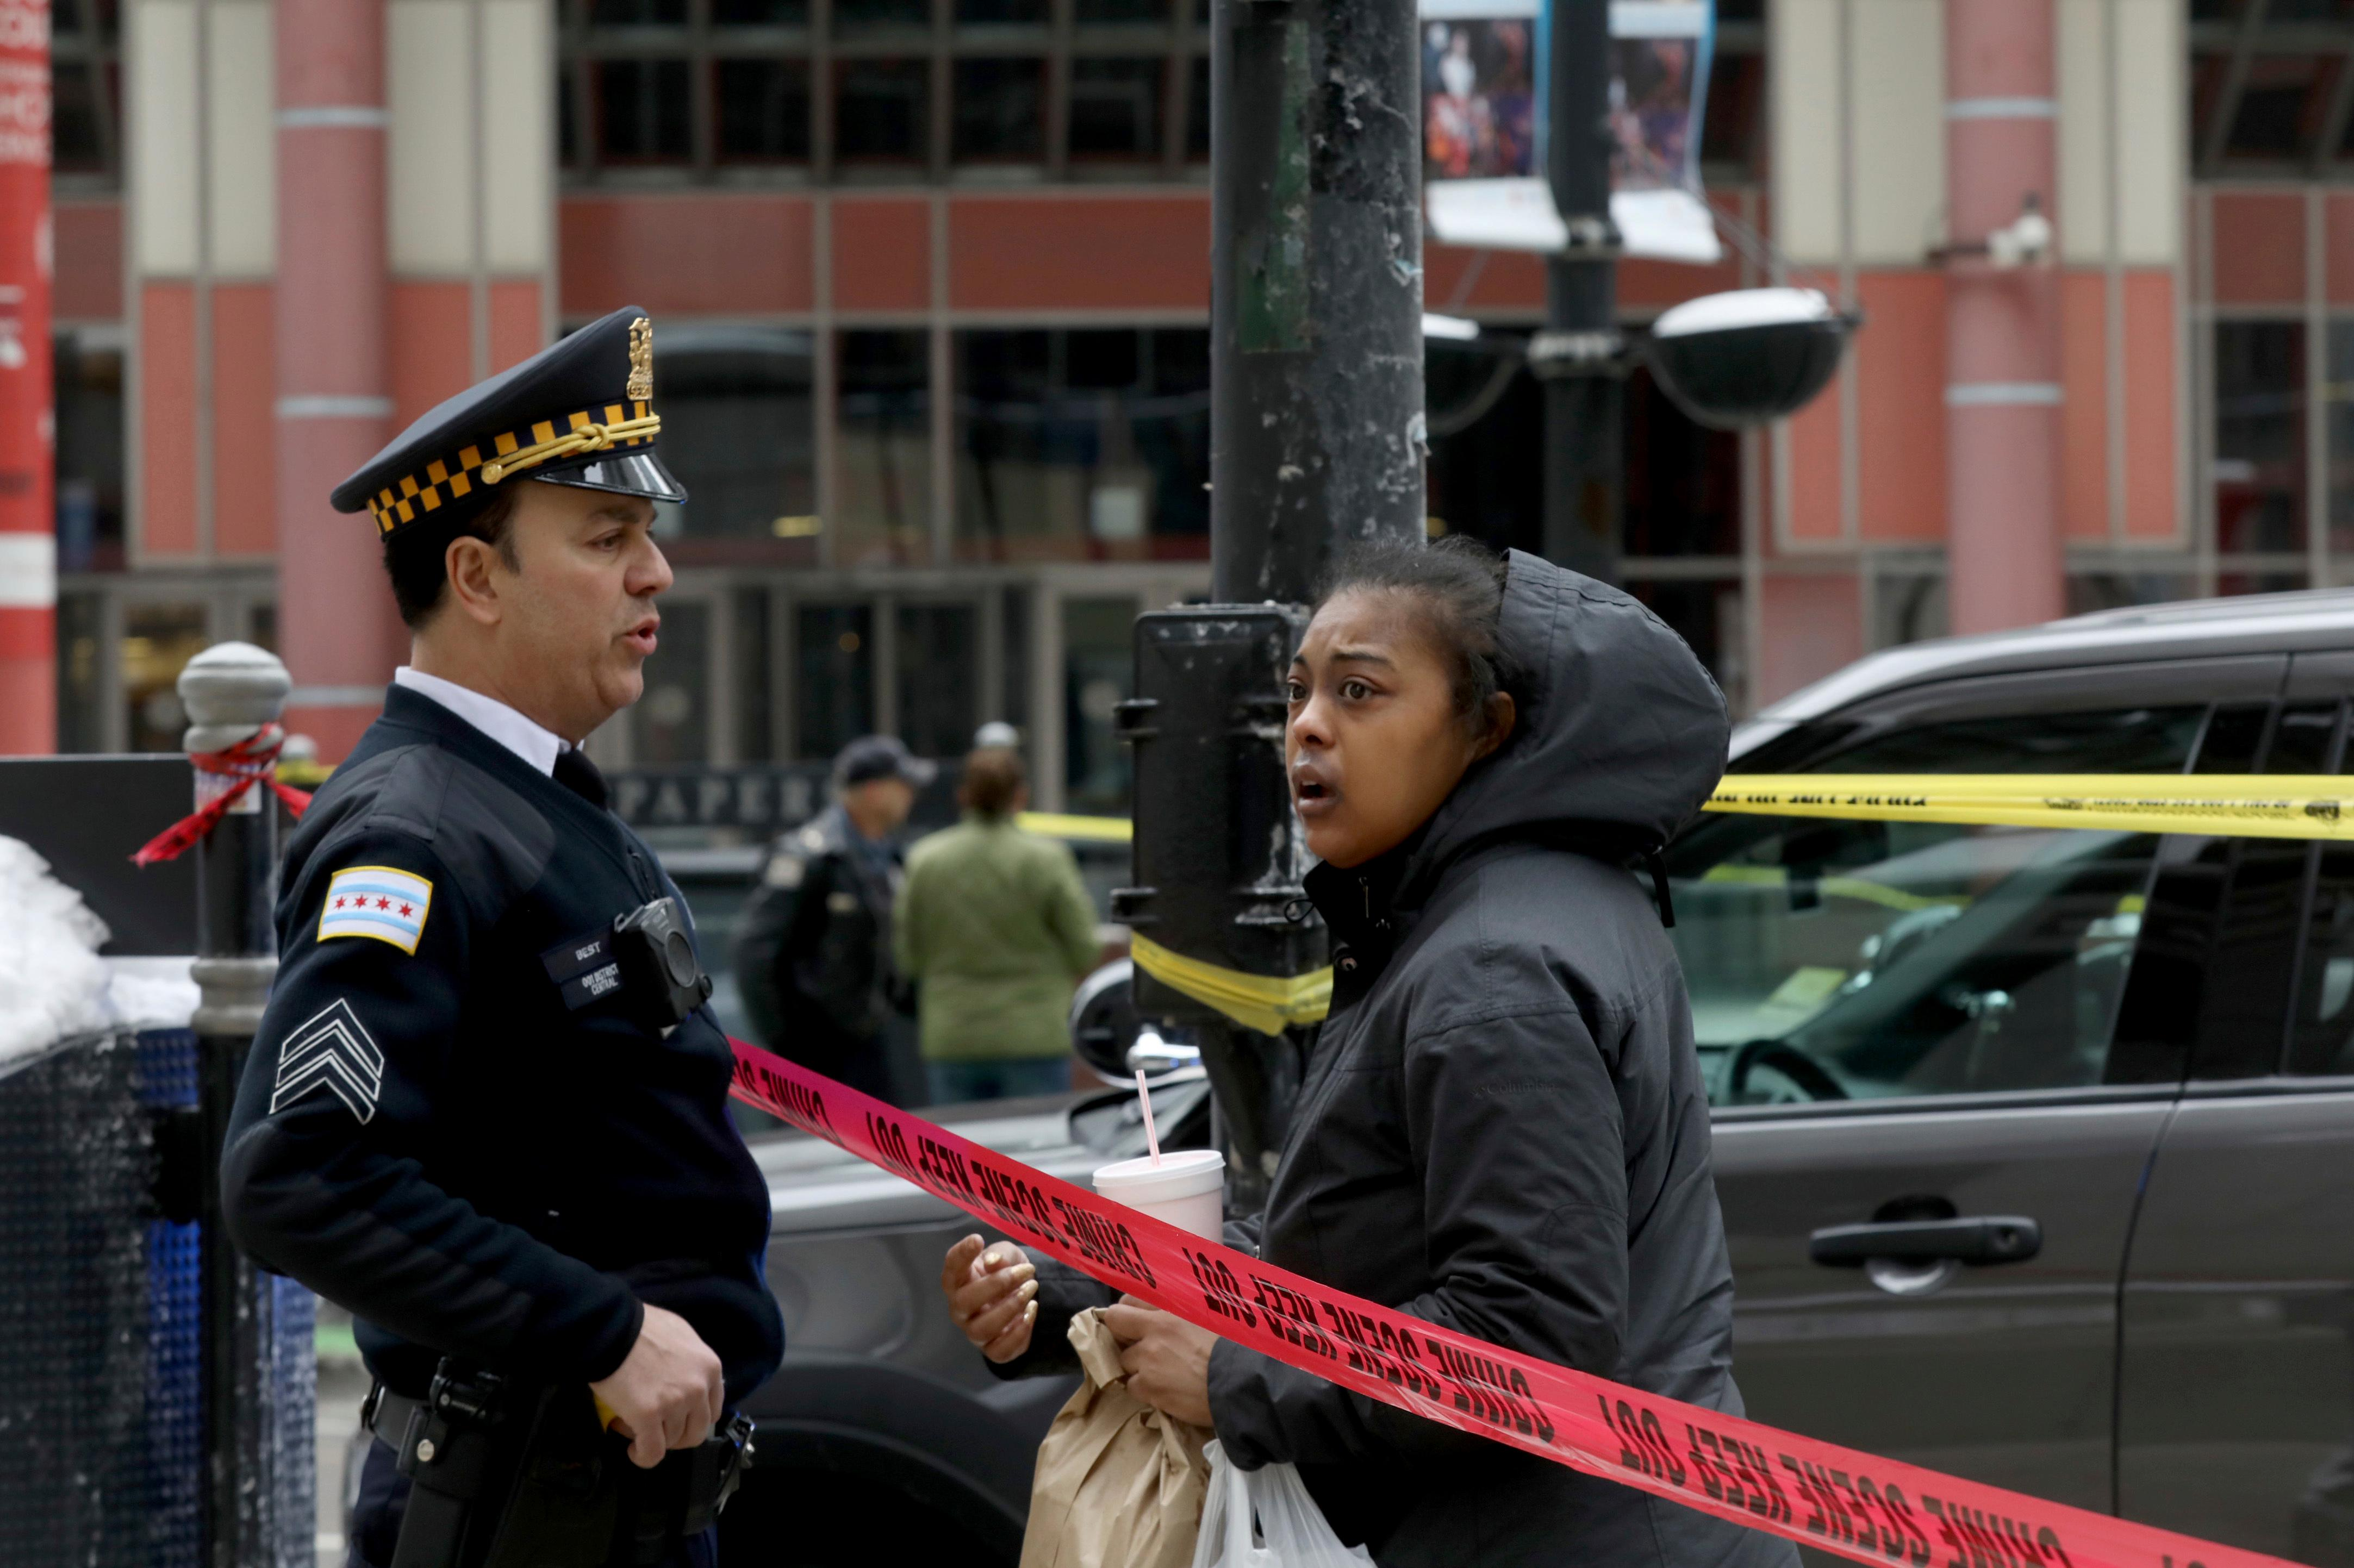 A Chicago Police officer speaks a with a pedestrian at the scene where an off-duty officer was shot while assisting a tactical team at a state government office building, Tuesday, Feb. 13, 2018, in Chicago. (John J. Kim/Chicago Tribune via AP)